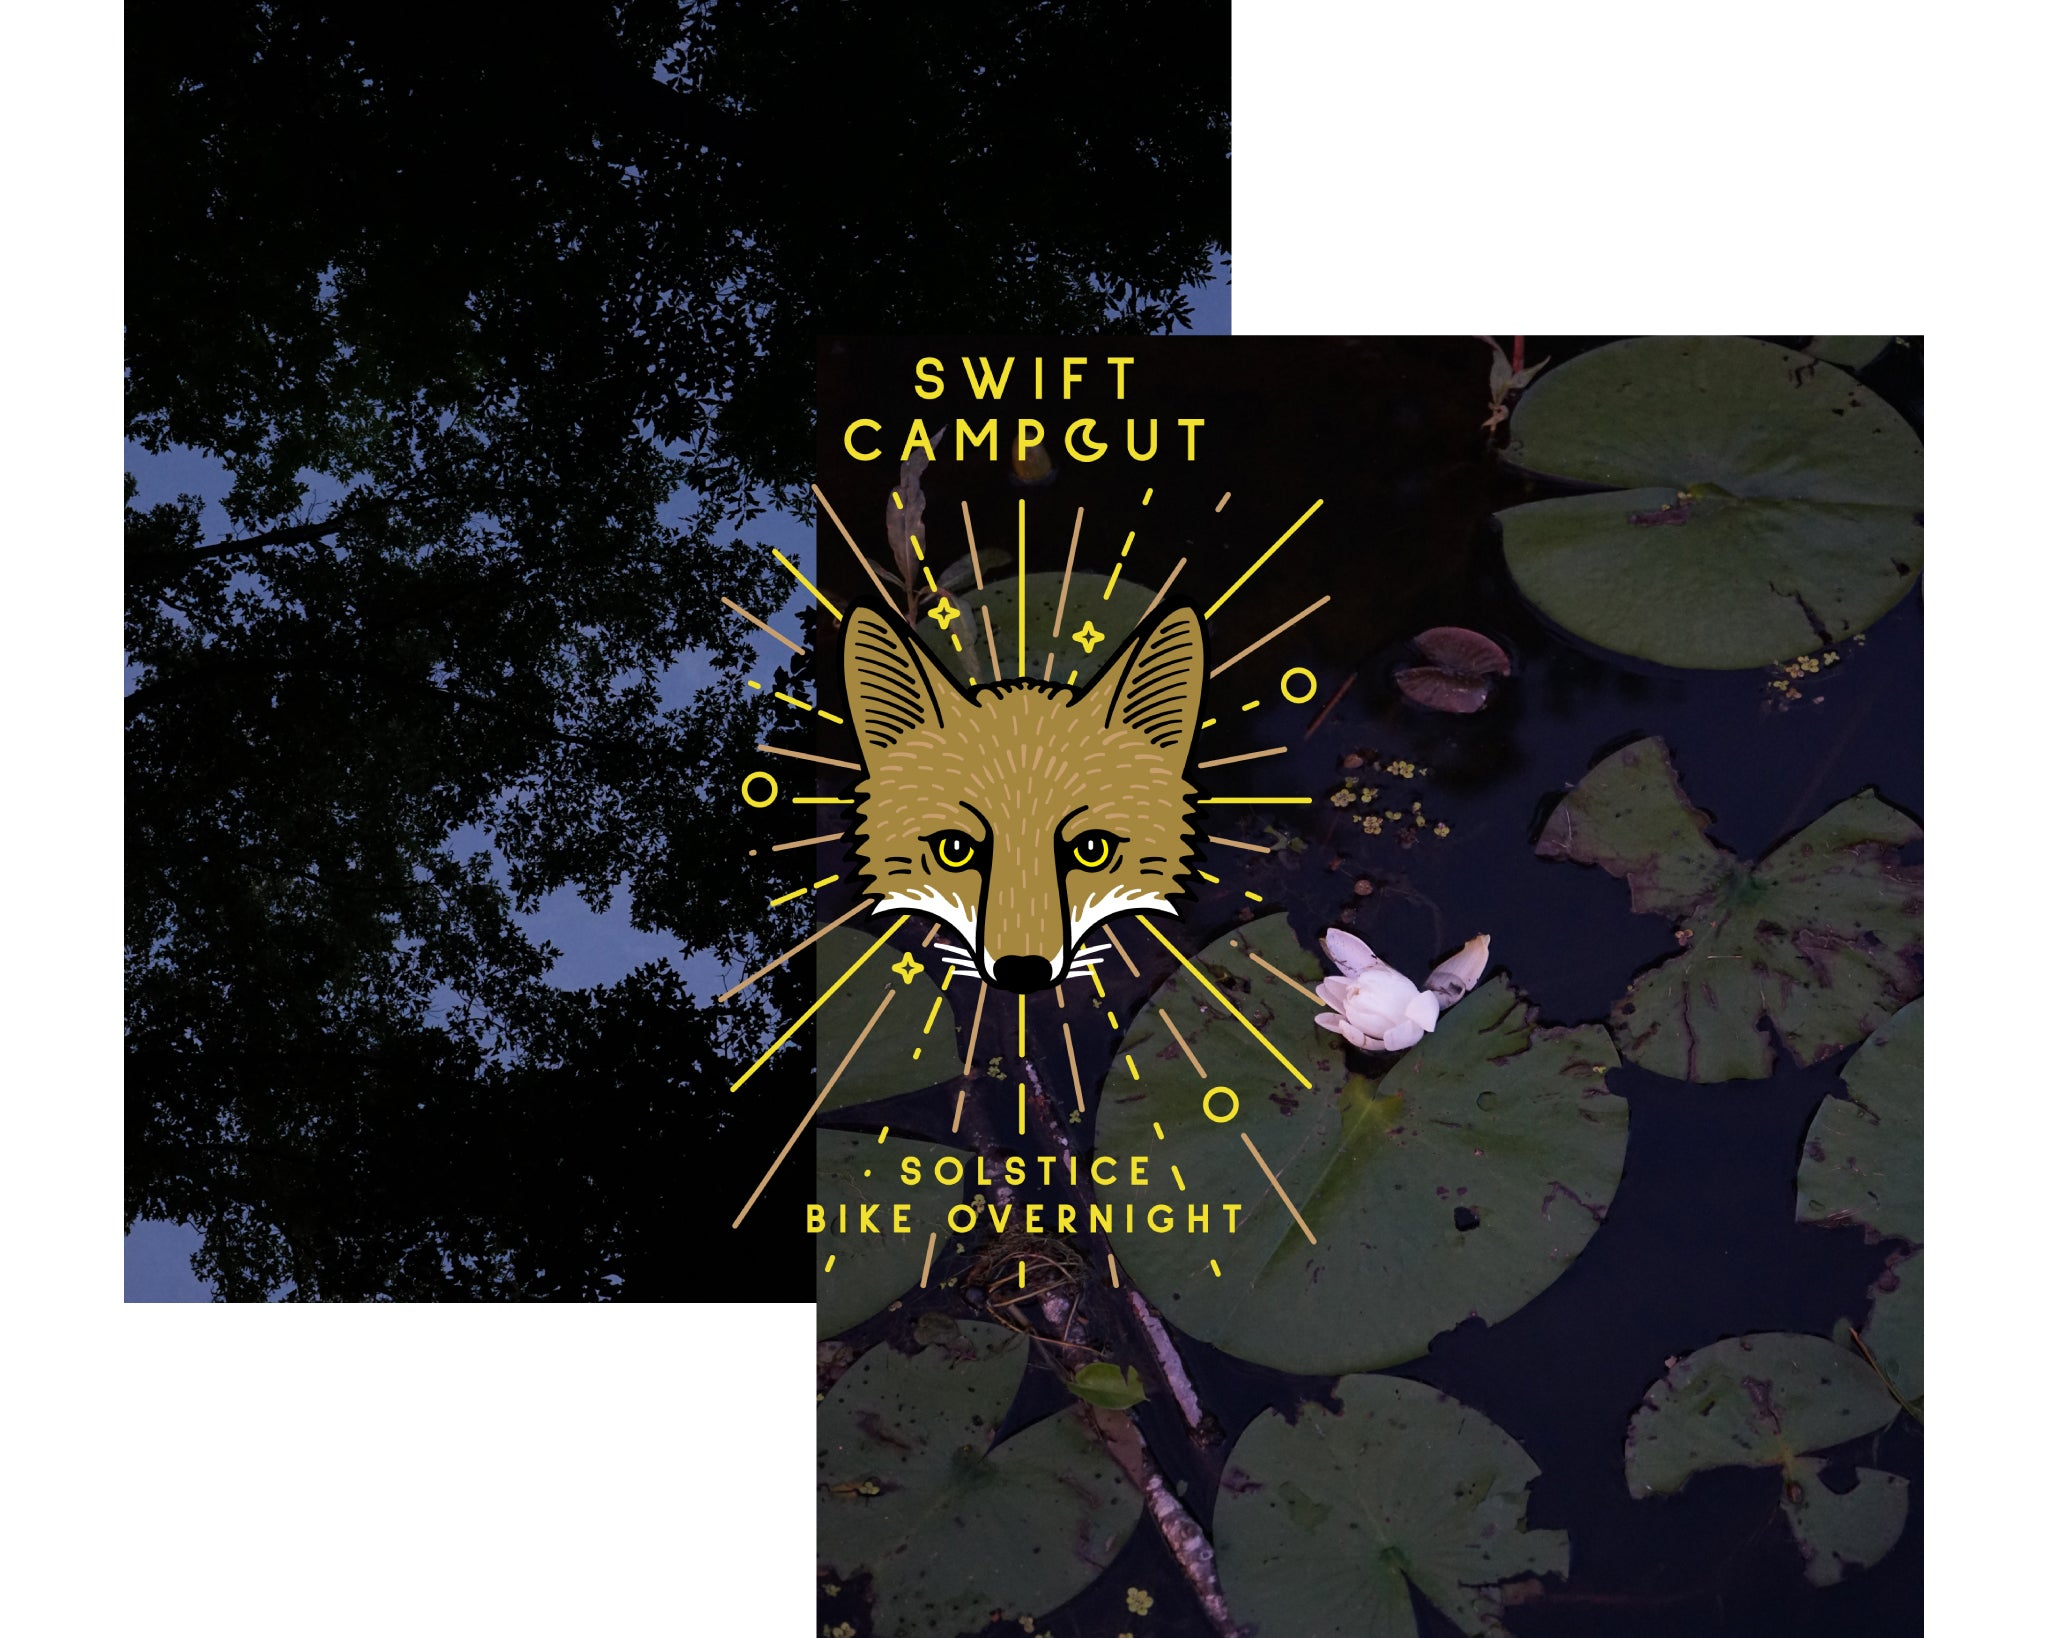 Swift Campout